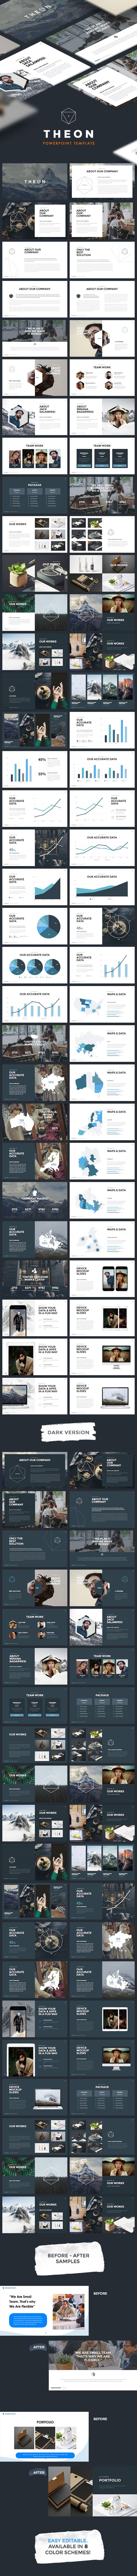 Modern Minimal Powerpoint Template (Theon) - Creative PowerPoint Templates Download here: https://graphicriver.net/item/modern-minimal-powerpoint-template-theon/19728167?ref=classicdesignp